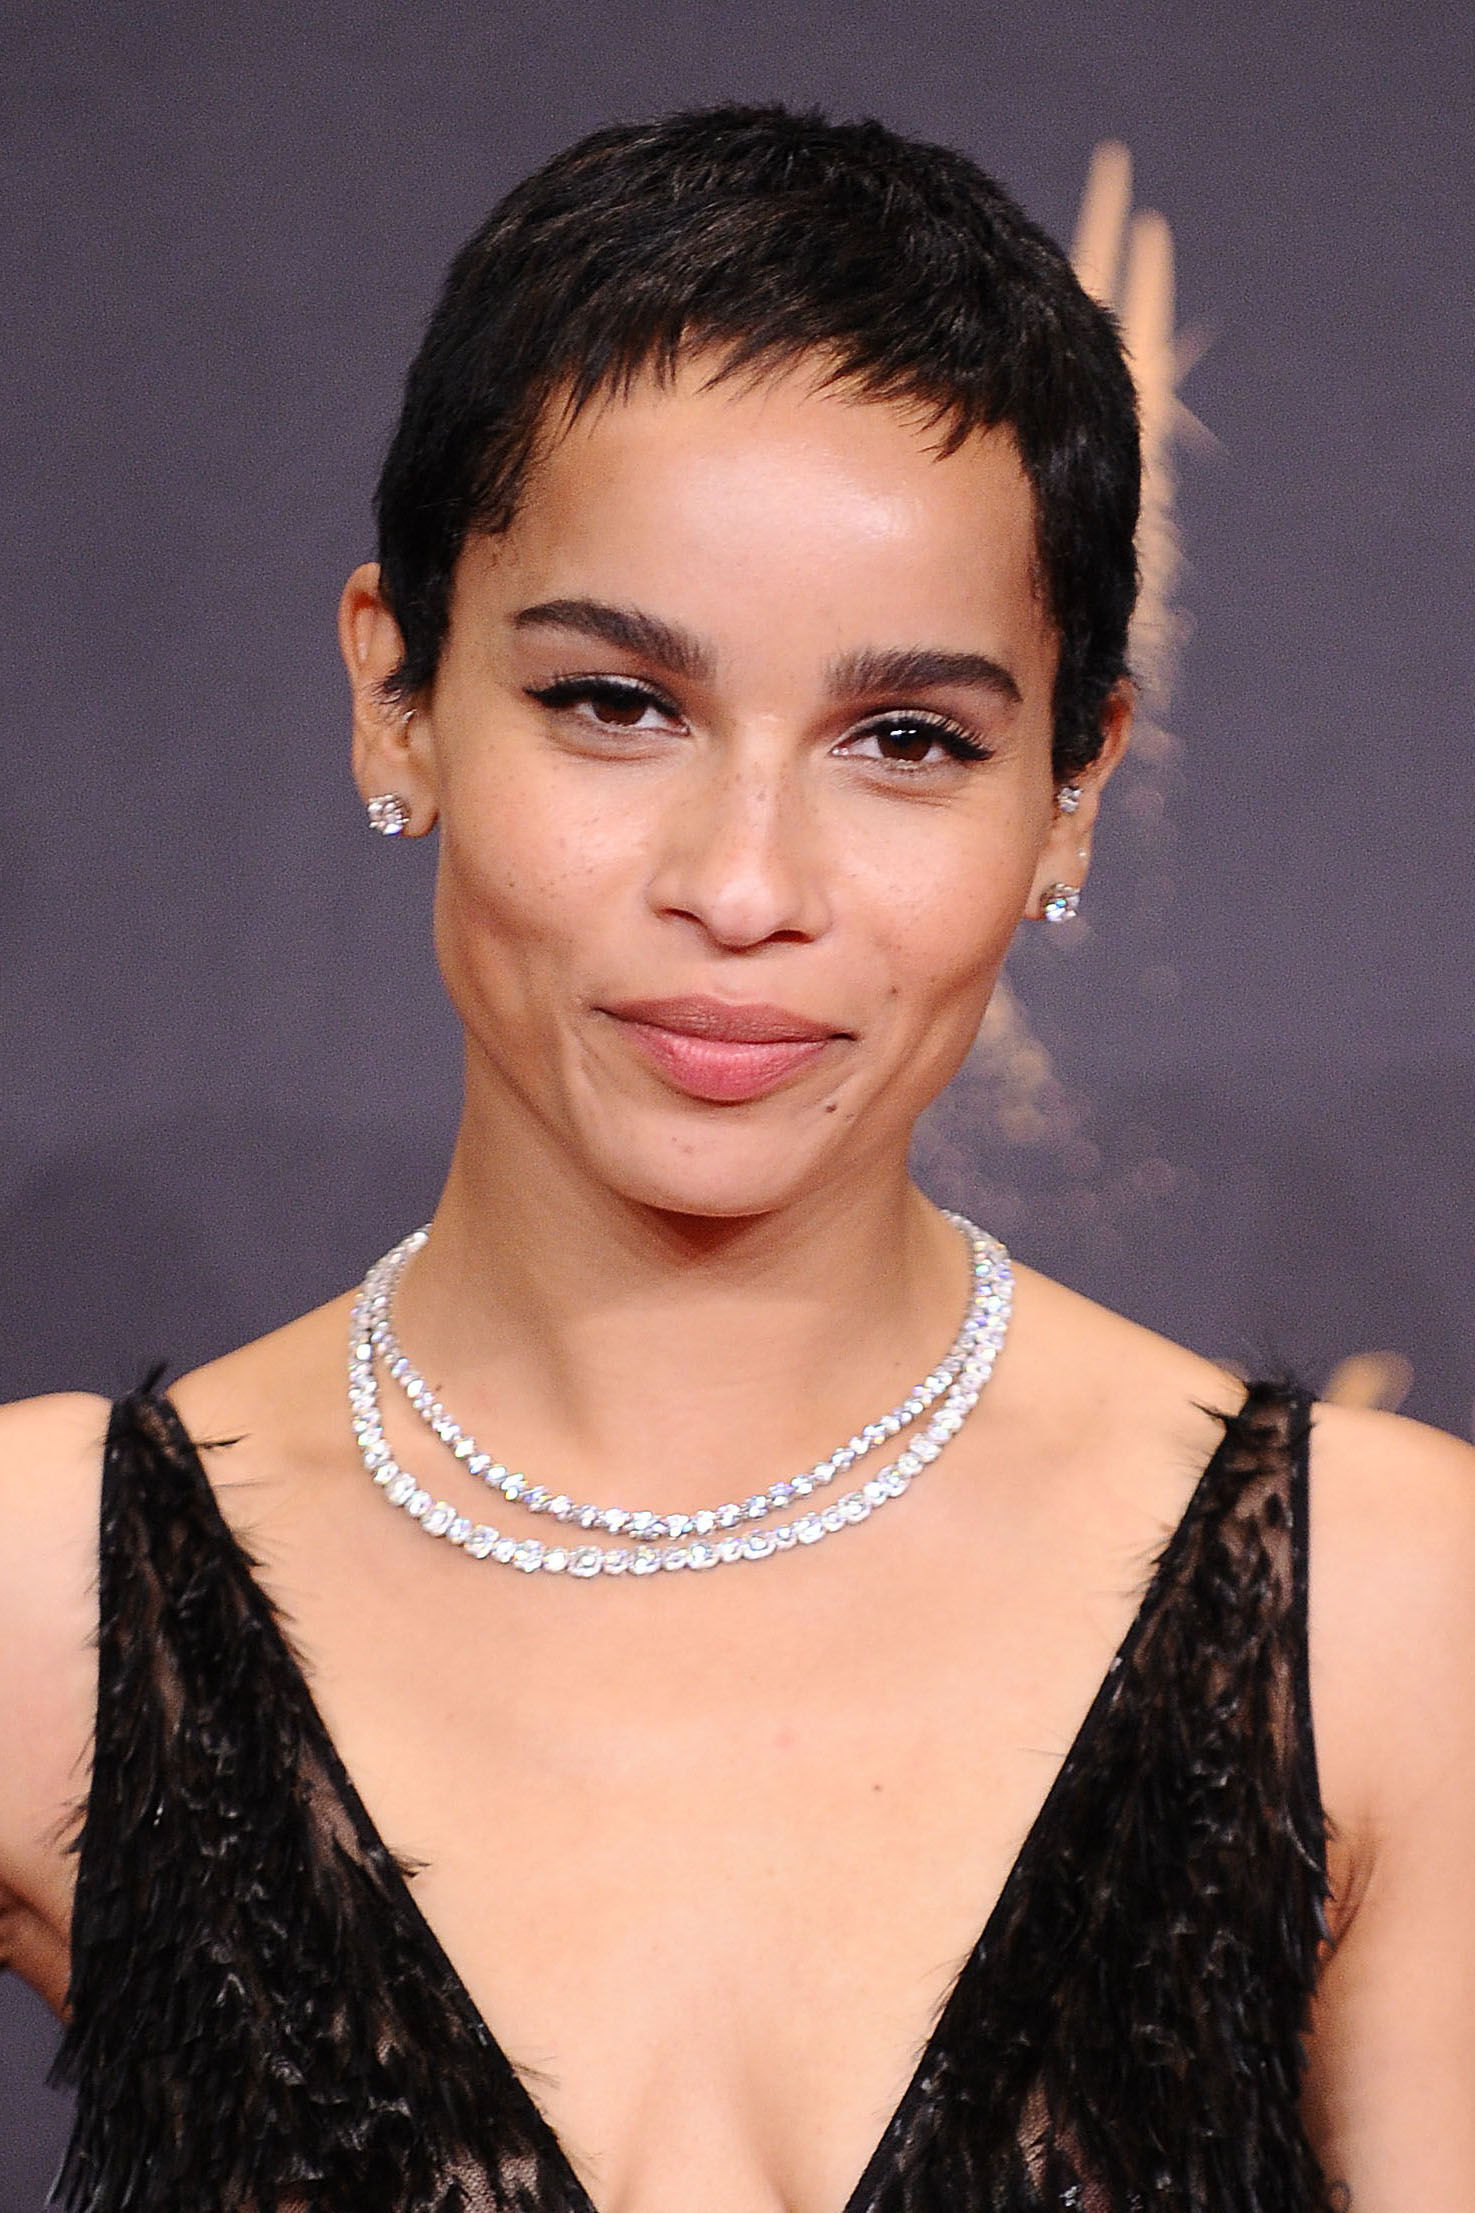 Zoe Kravitz in an elegant accessory. Photo Credit: Jason LaVeris/FilmMagic